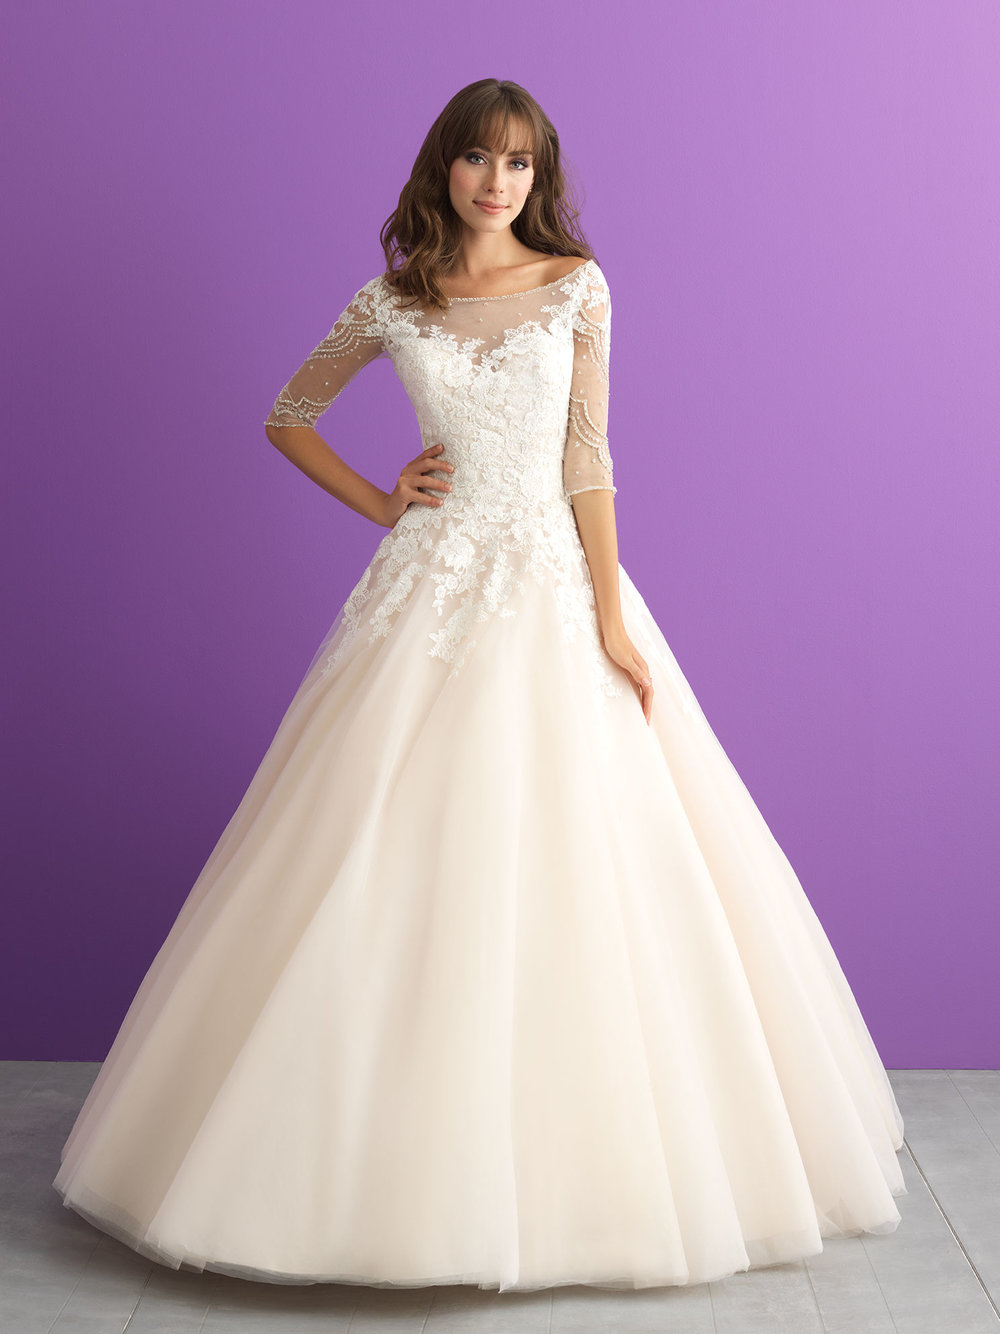 Style 3006 - This lace-topped ballgown features a bateau neckline and elbow length sheer sleeves.